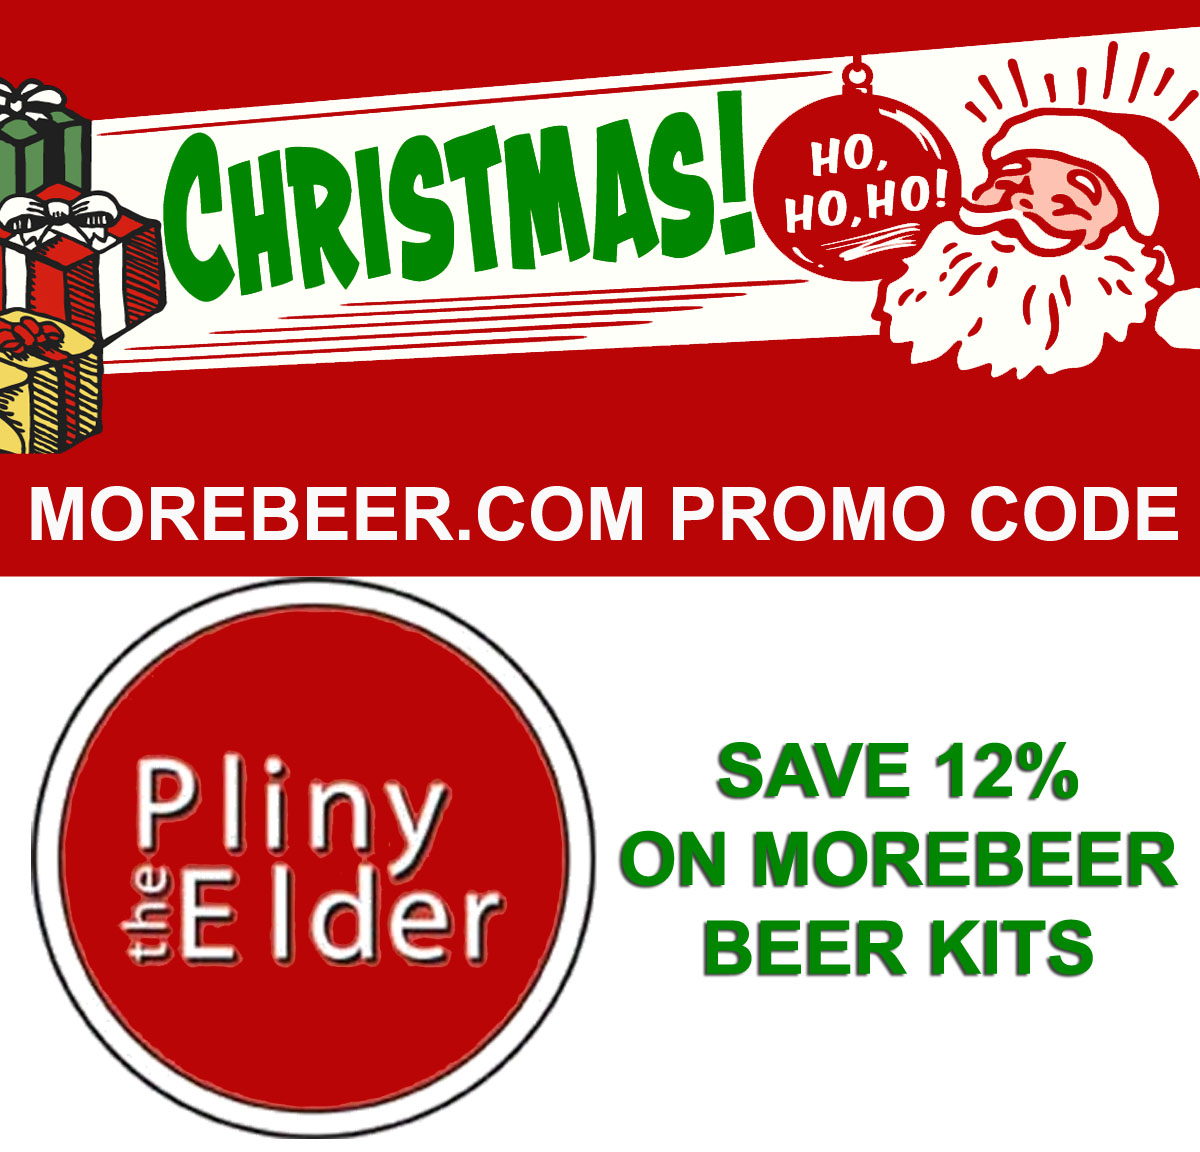 Save 12% On All MoreMore.com Home Brewing Beer Recipe Kits Coupon Code